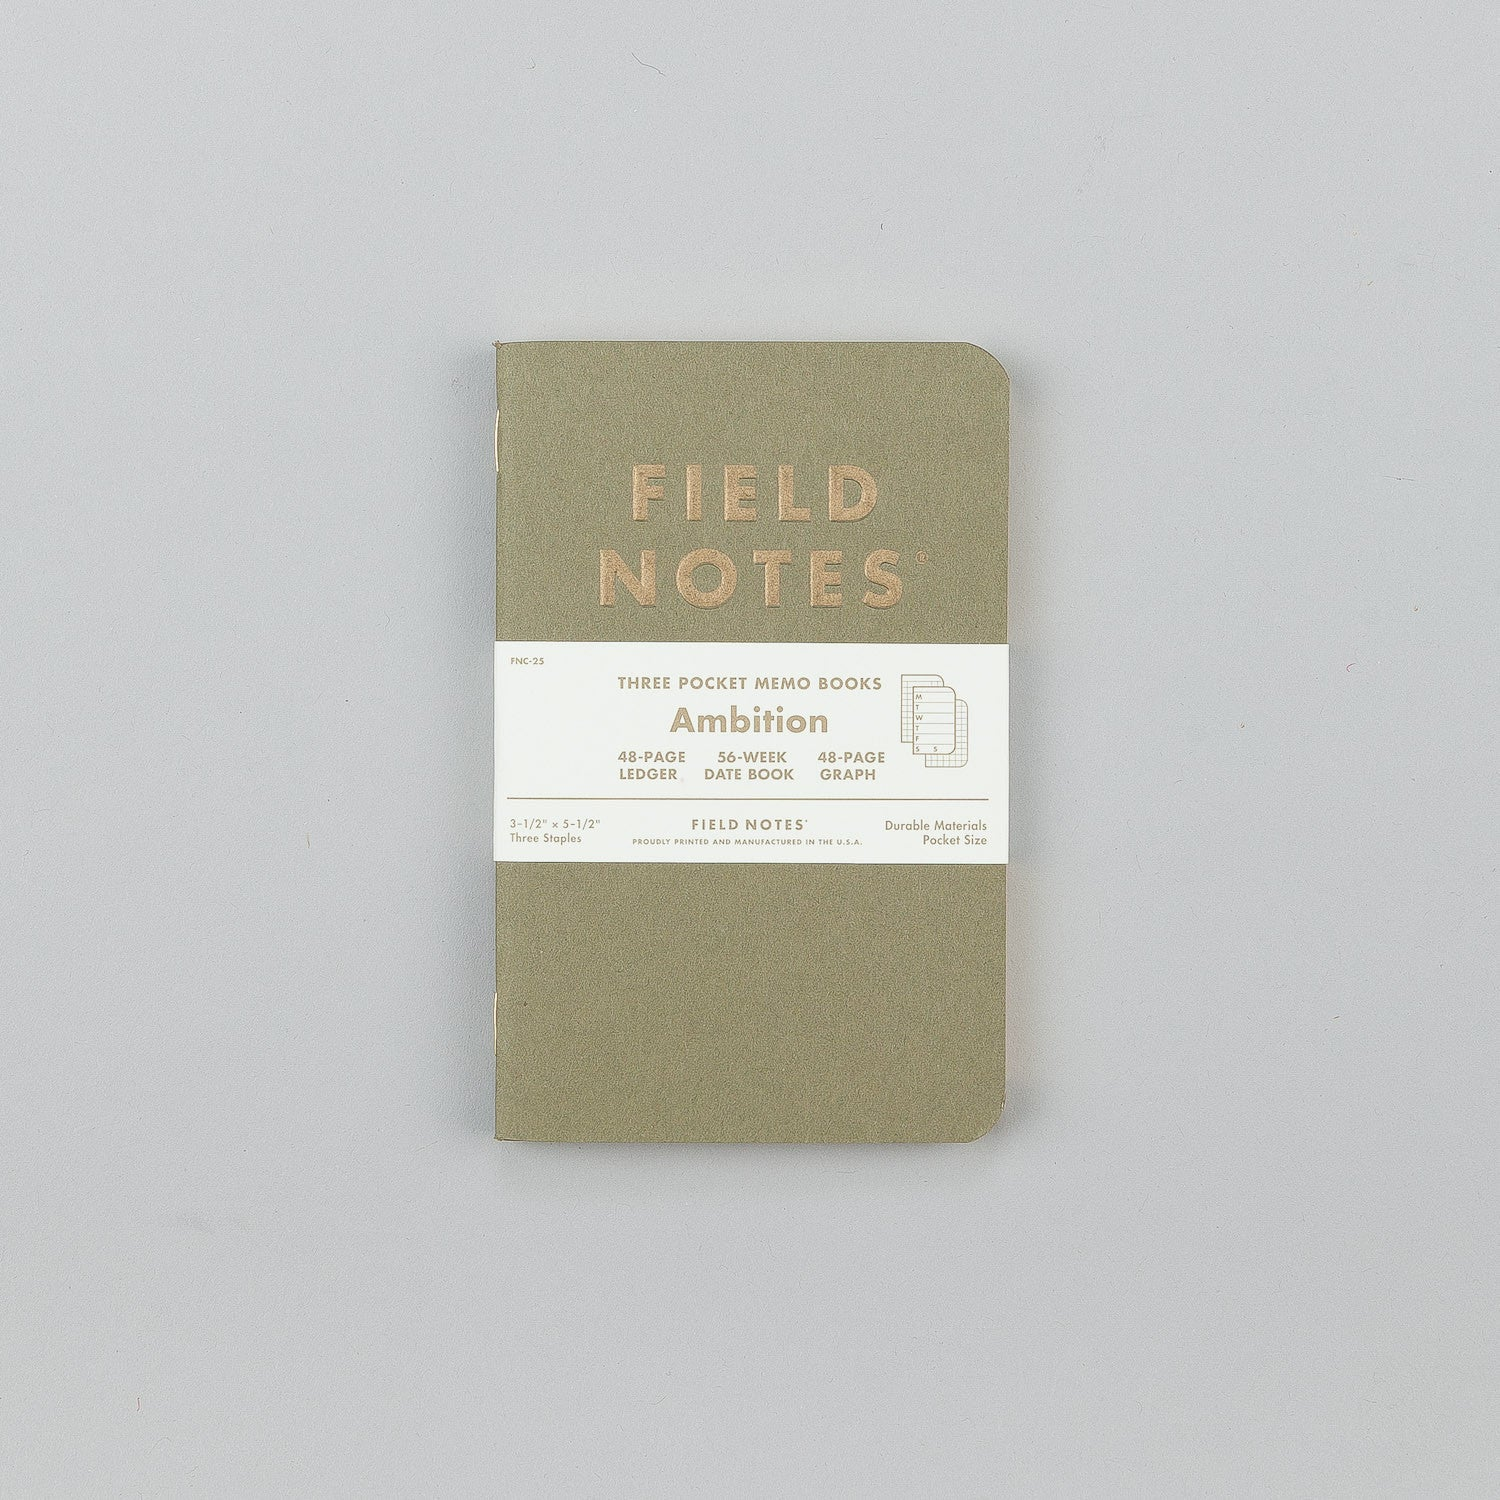 Field Notes Limited Edition Ambition Notebooks